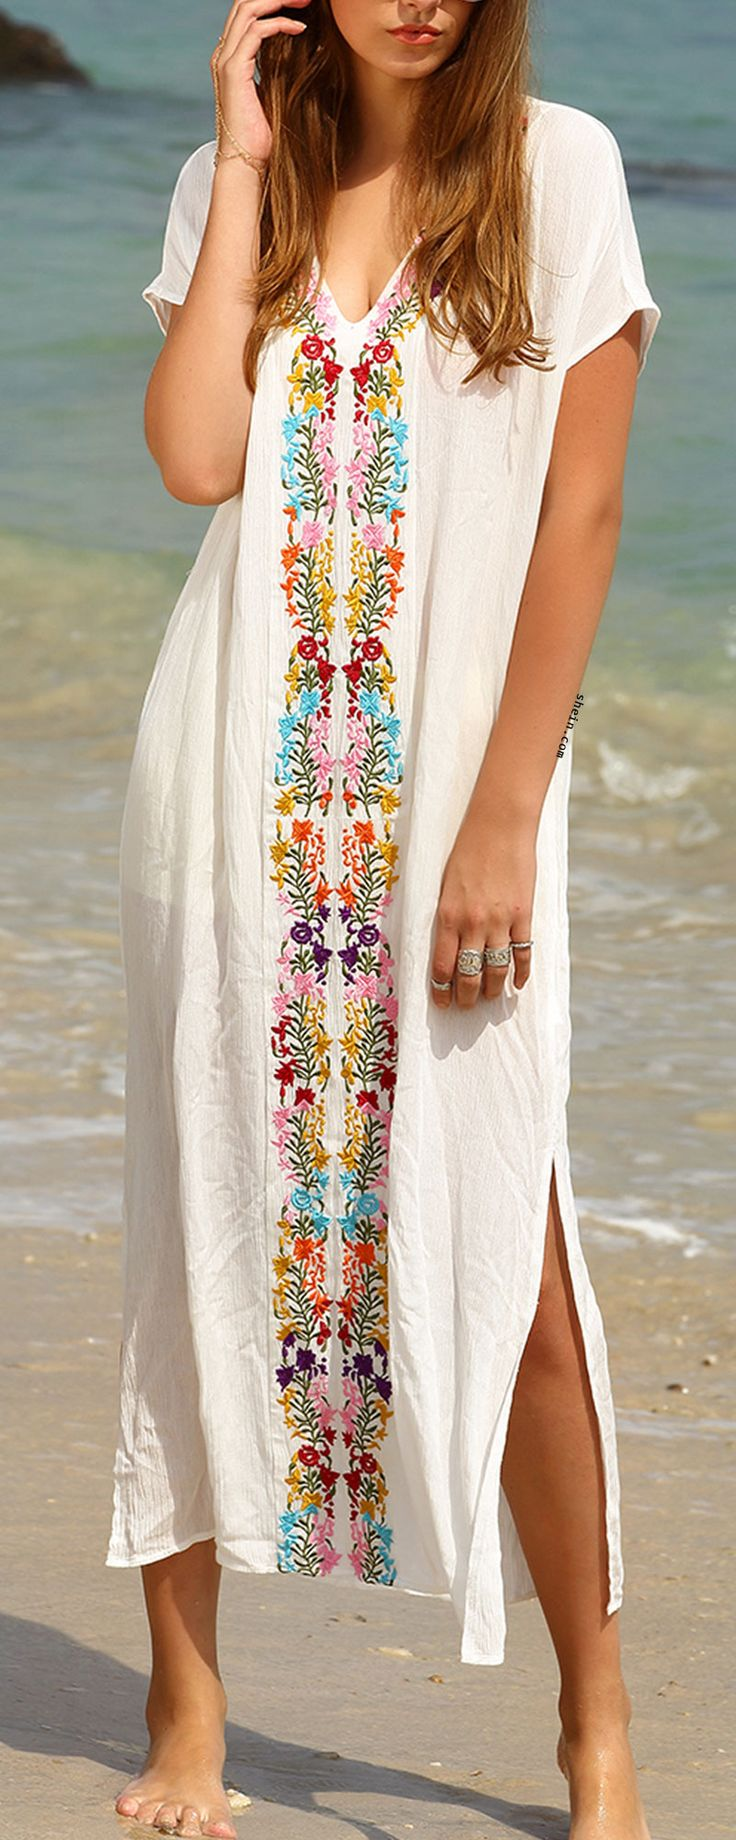 Beautiful & gorgeous embroidery dress! Catch it for vocation!